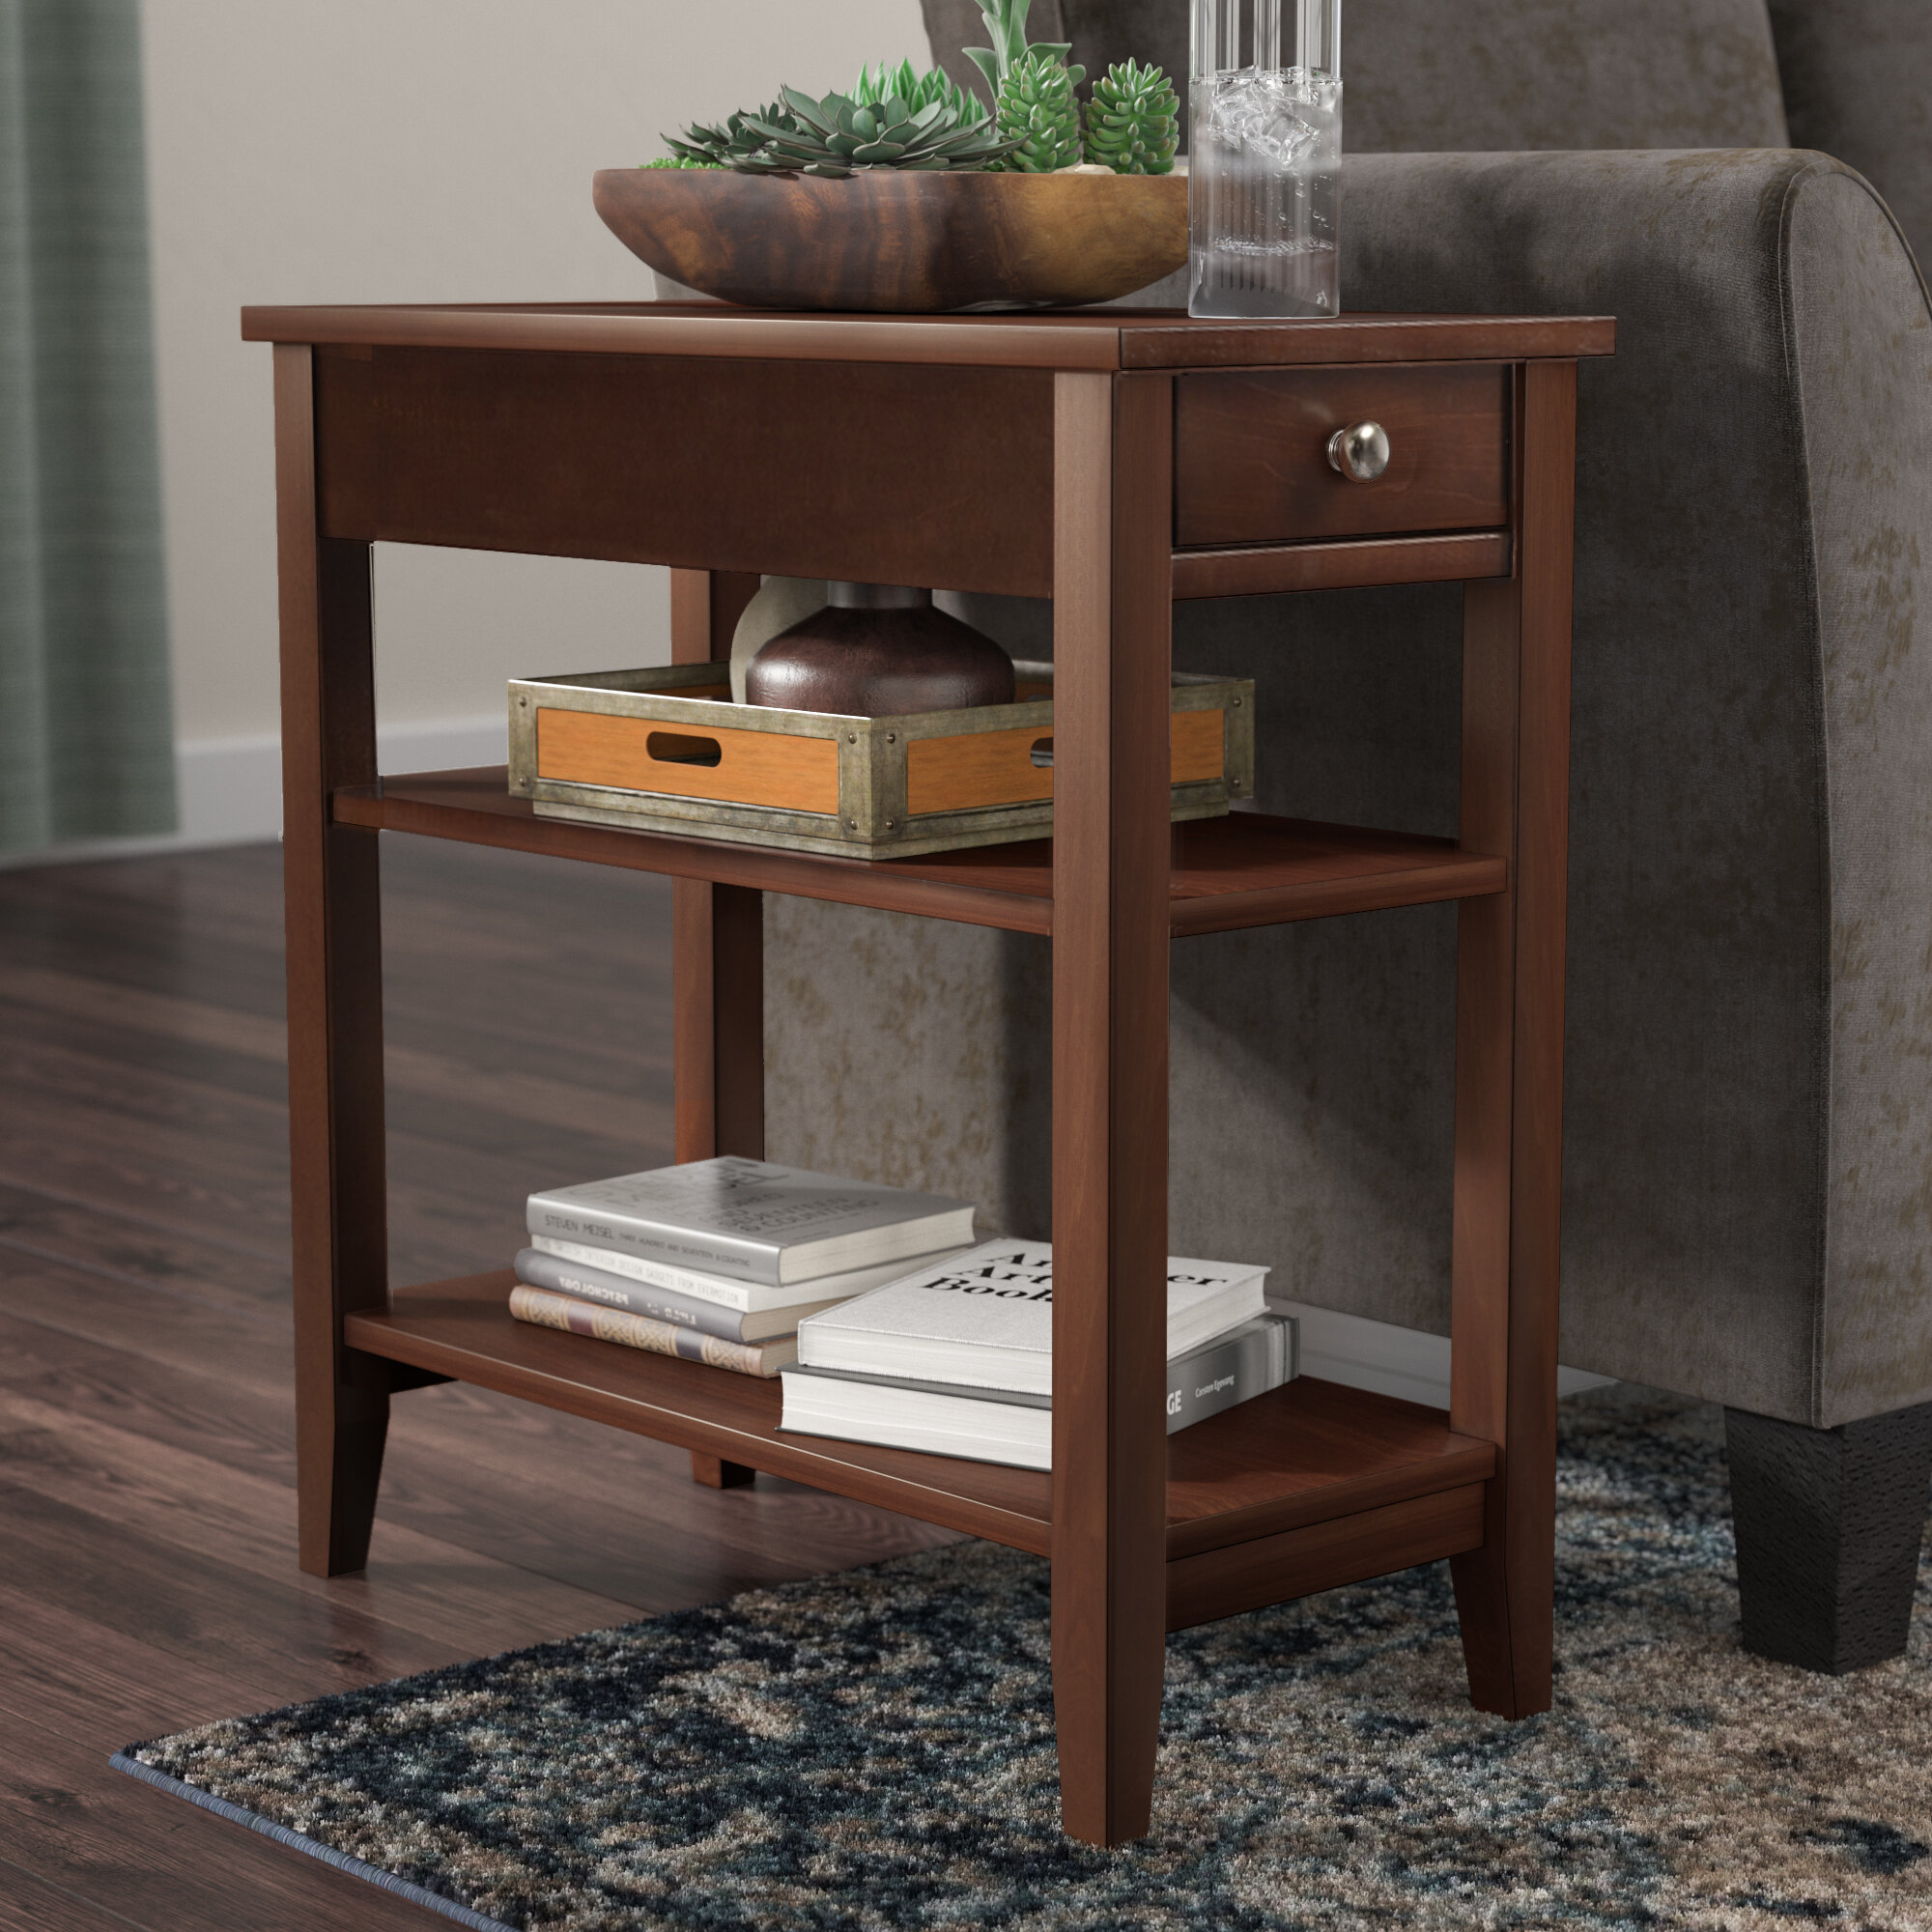 End Table with Birch Veneer and Storage & Narrow End Tables - Foter